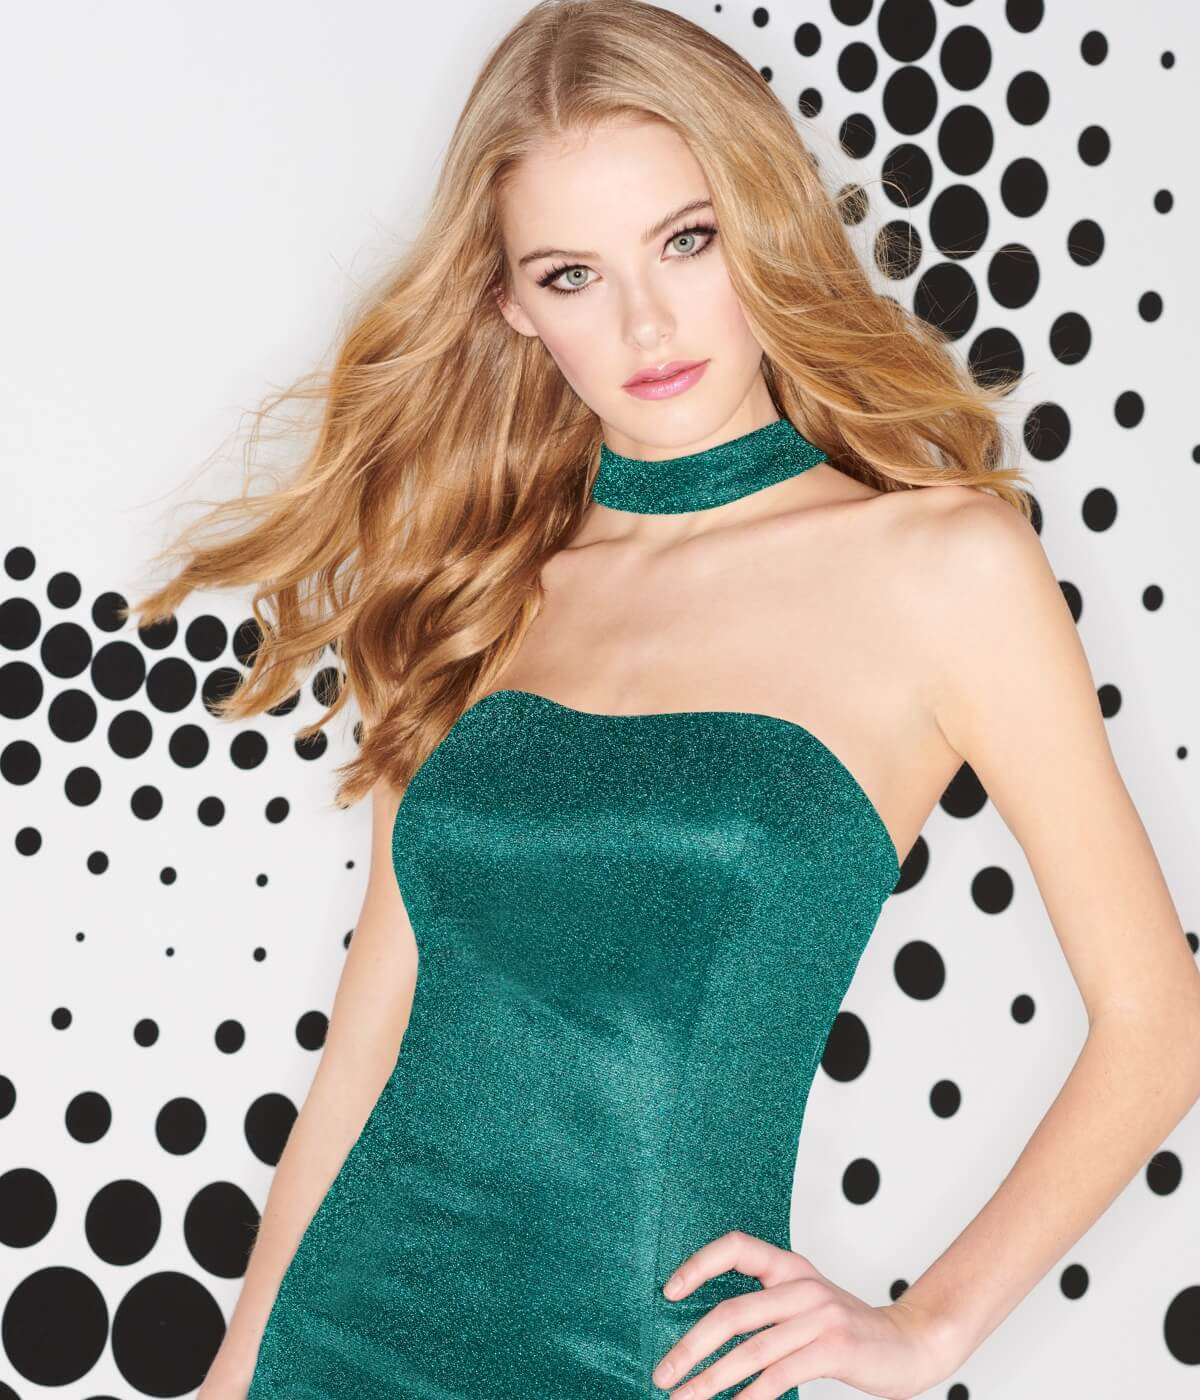 Blonde in green strapless dress